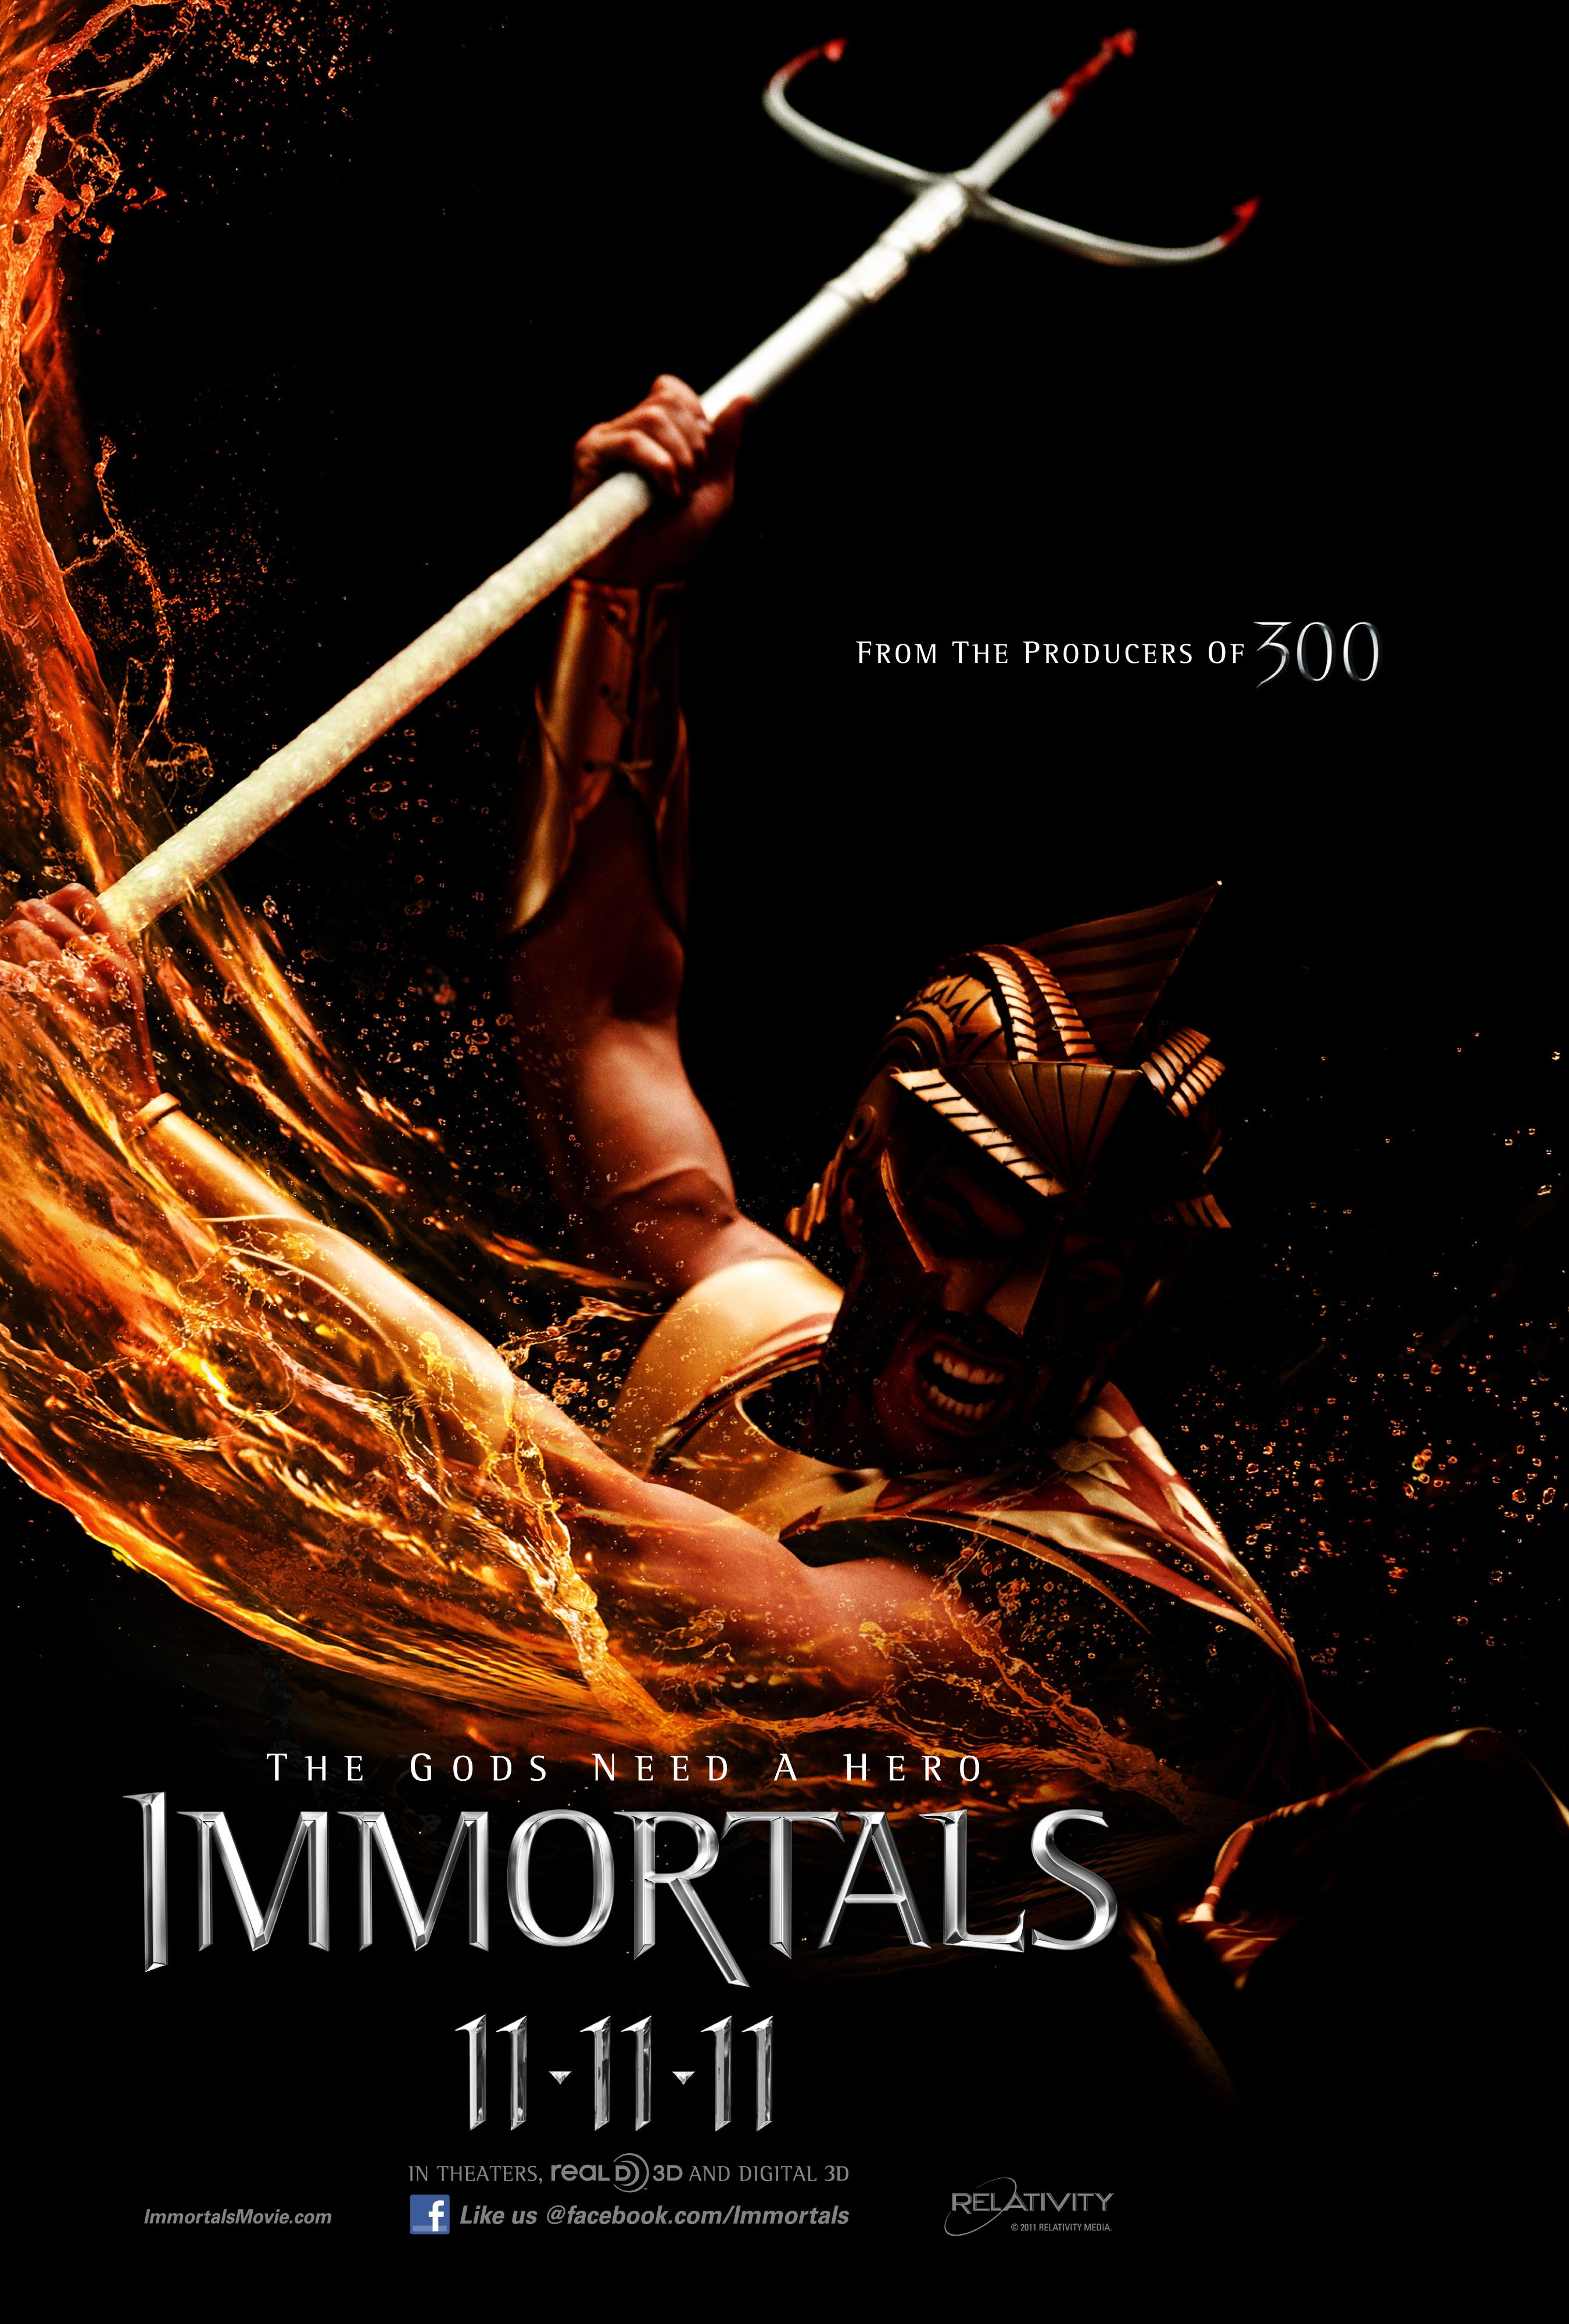 Immortals Full Movie Watch in HD Online for Free - 1 Movies Website